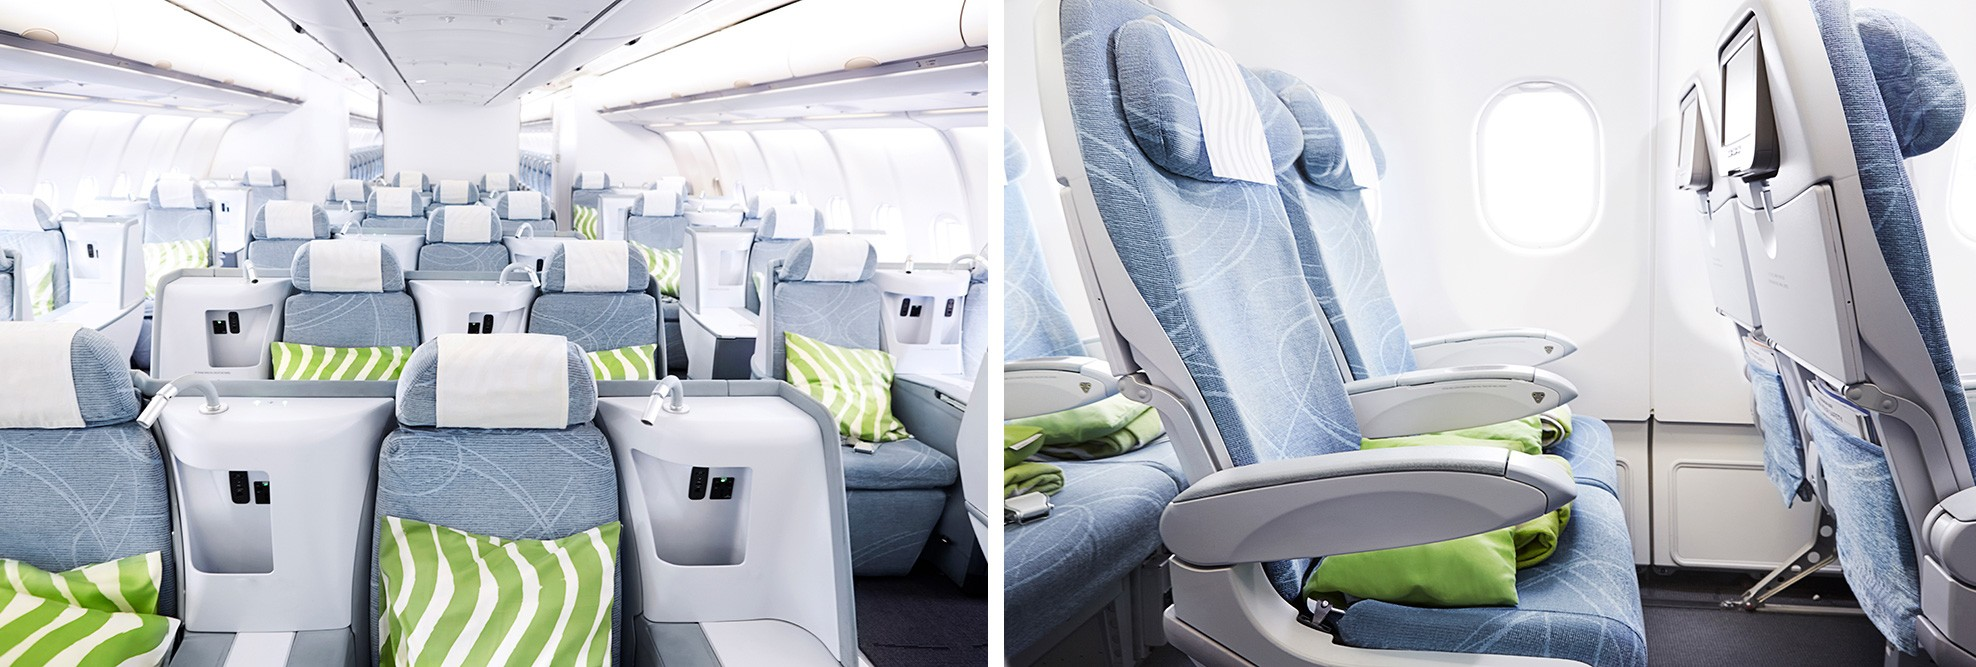 Finnair A330 Business and Economy Classes